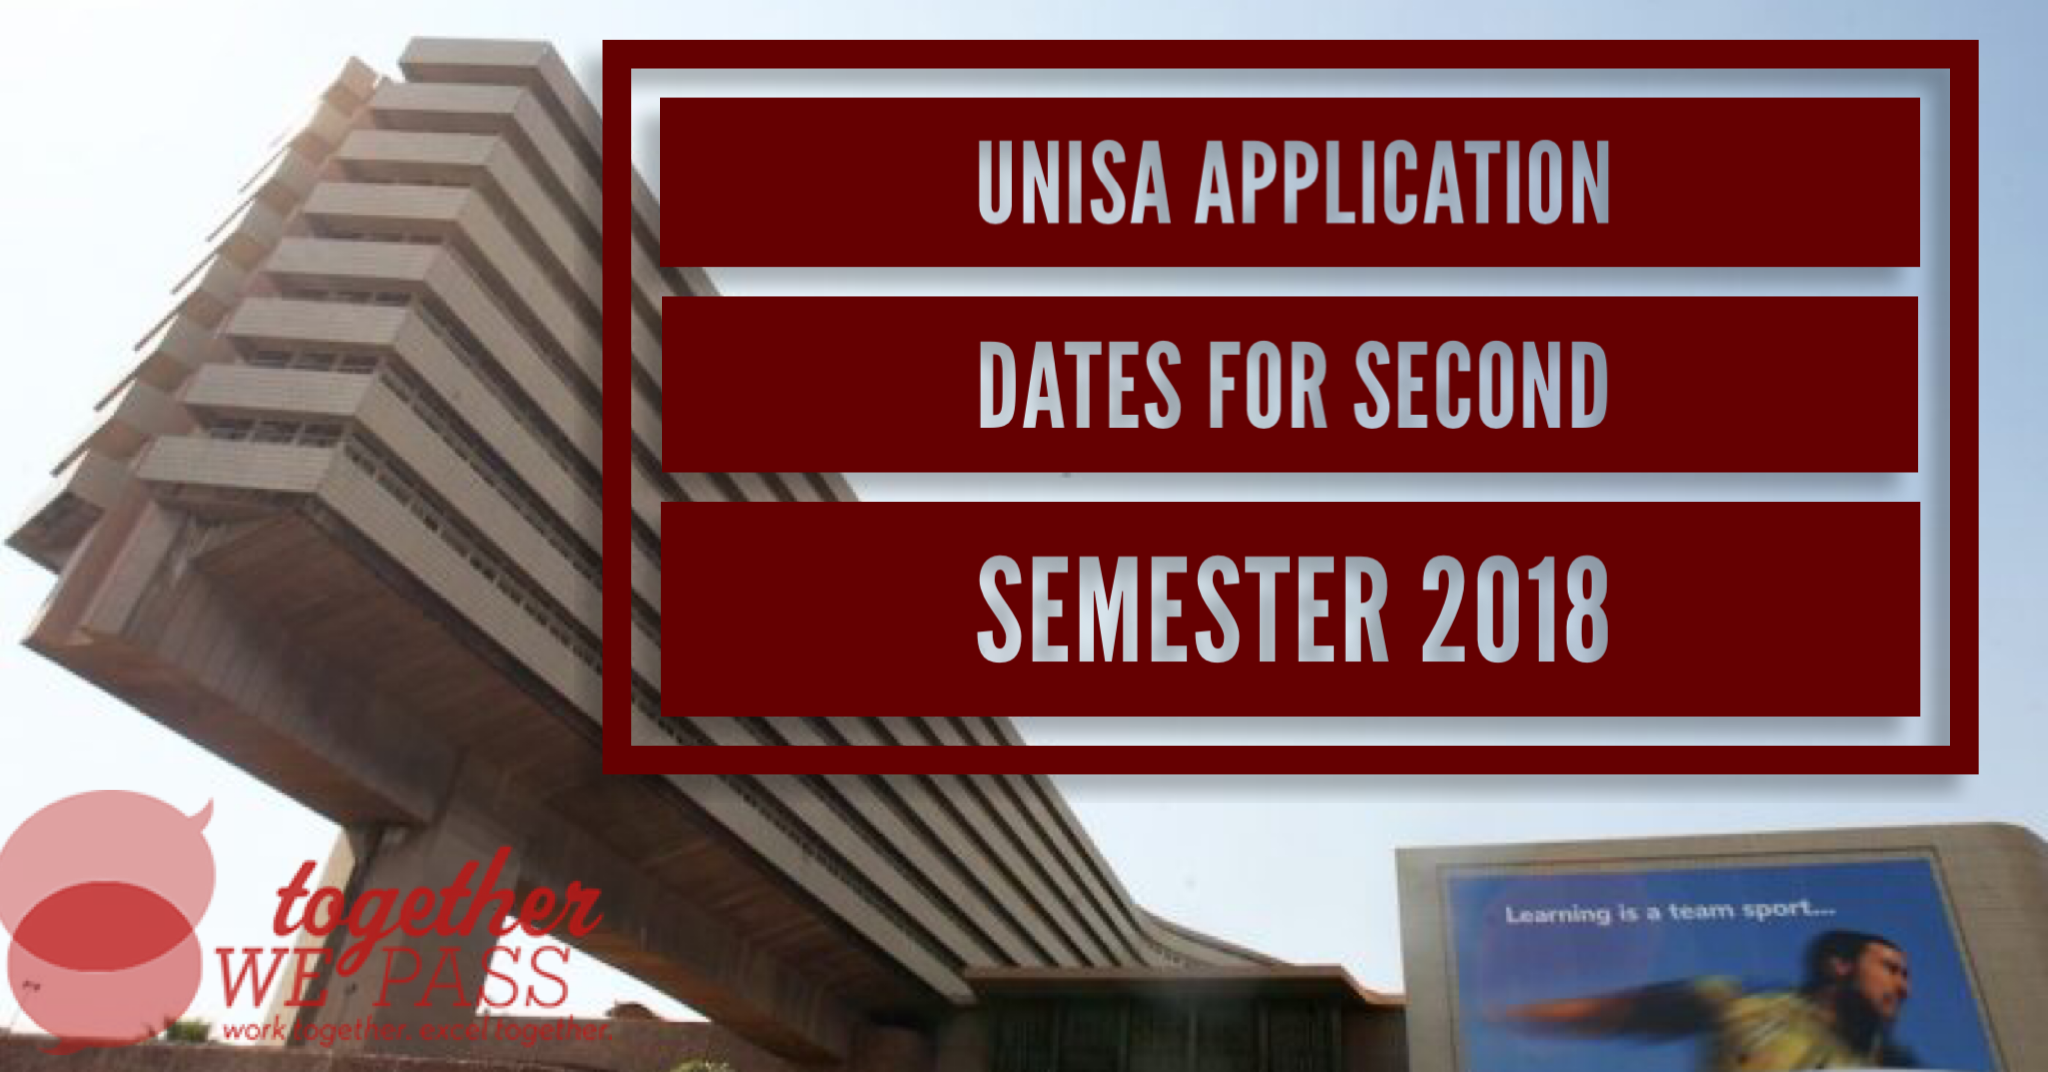 Unisa Applications for Second Semester 2018 Now Open